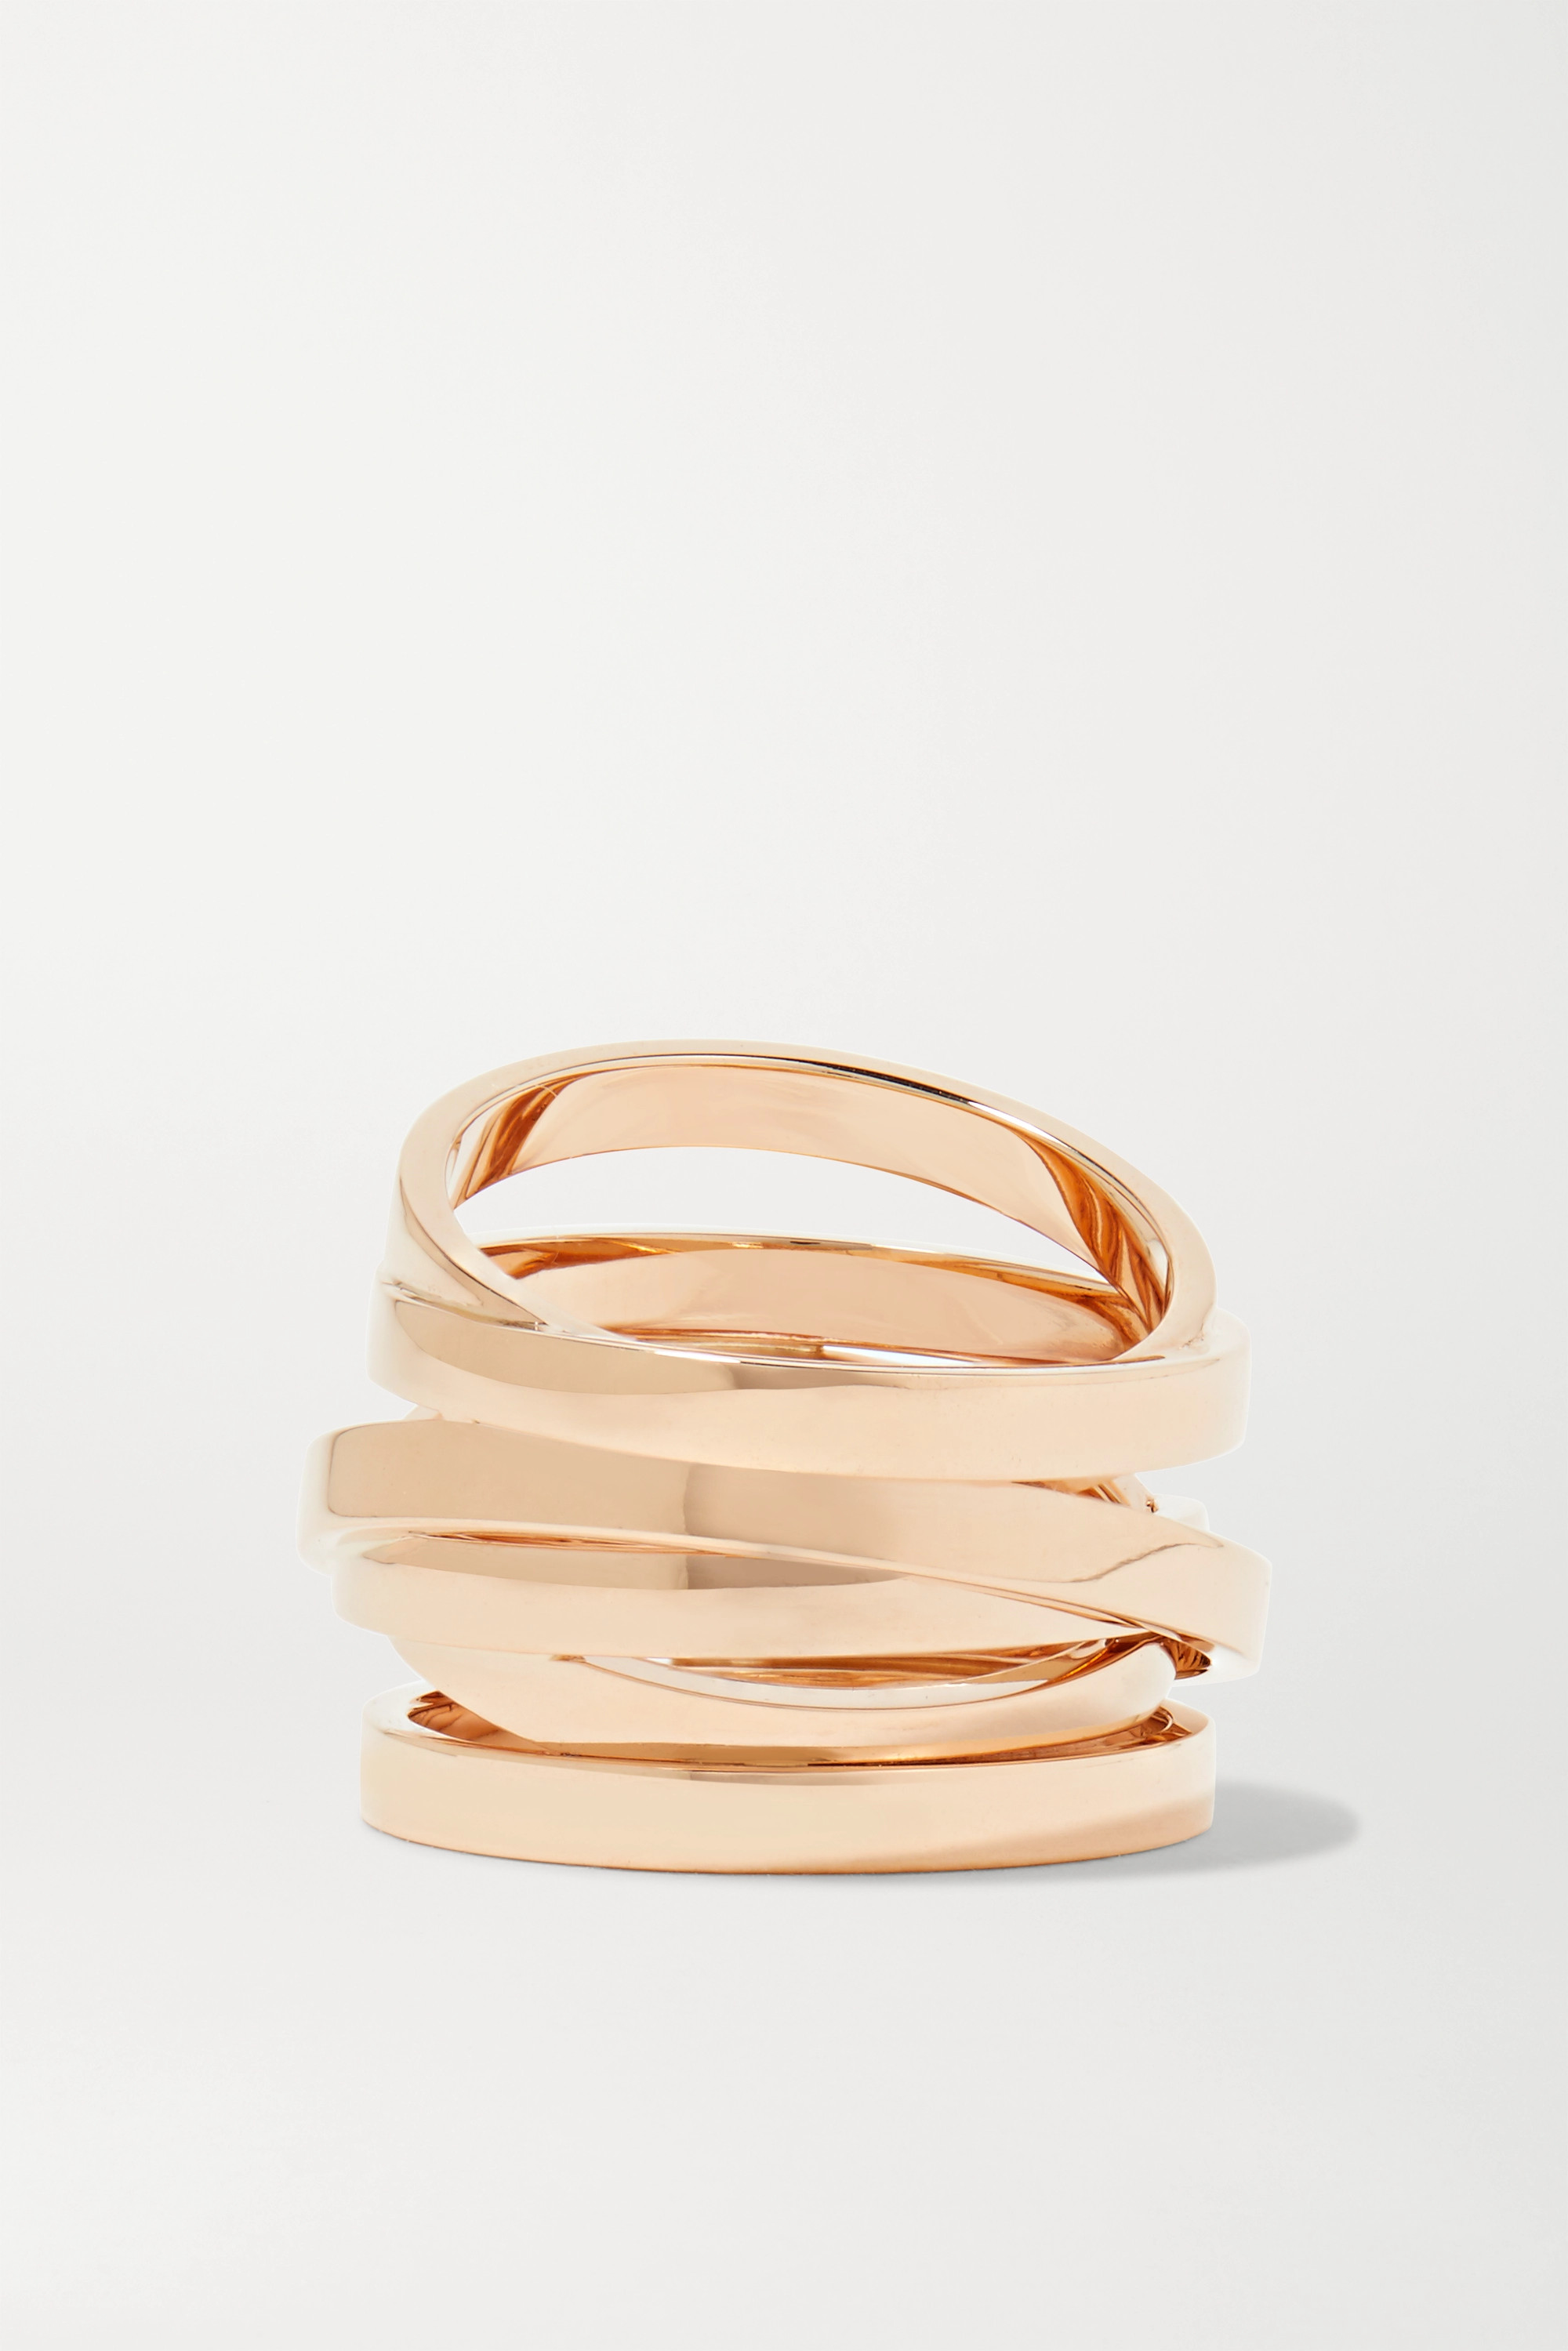 Repossi Technical Berbère Ring aus 18 Karat Roségold